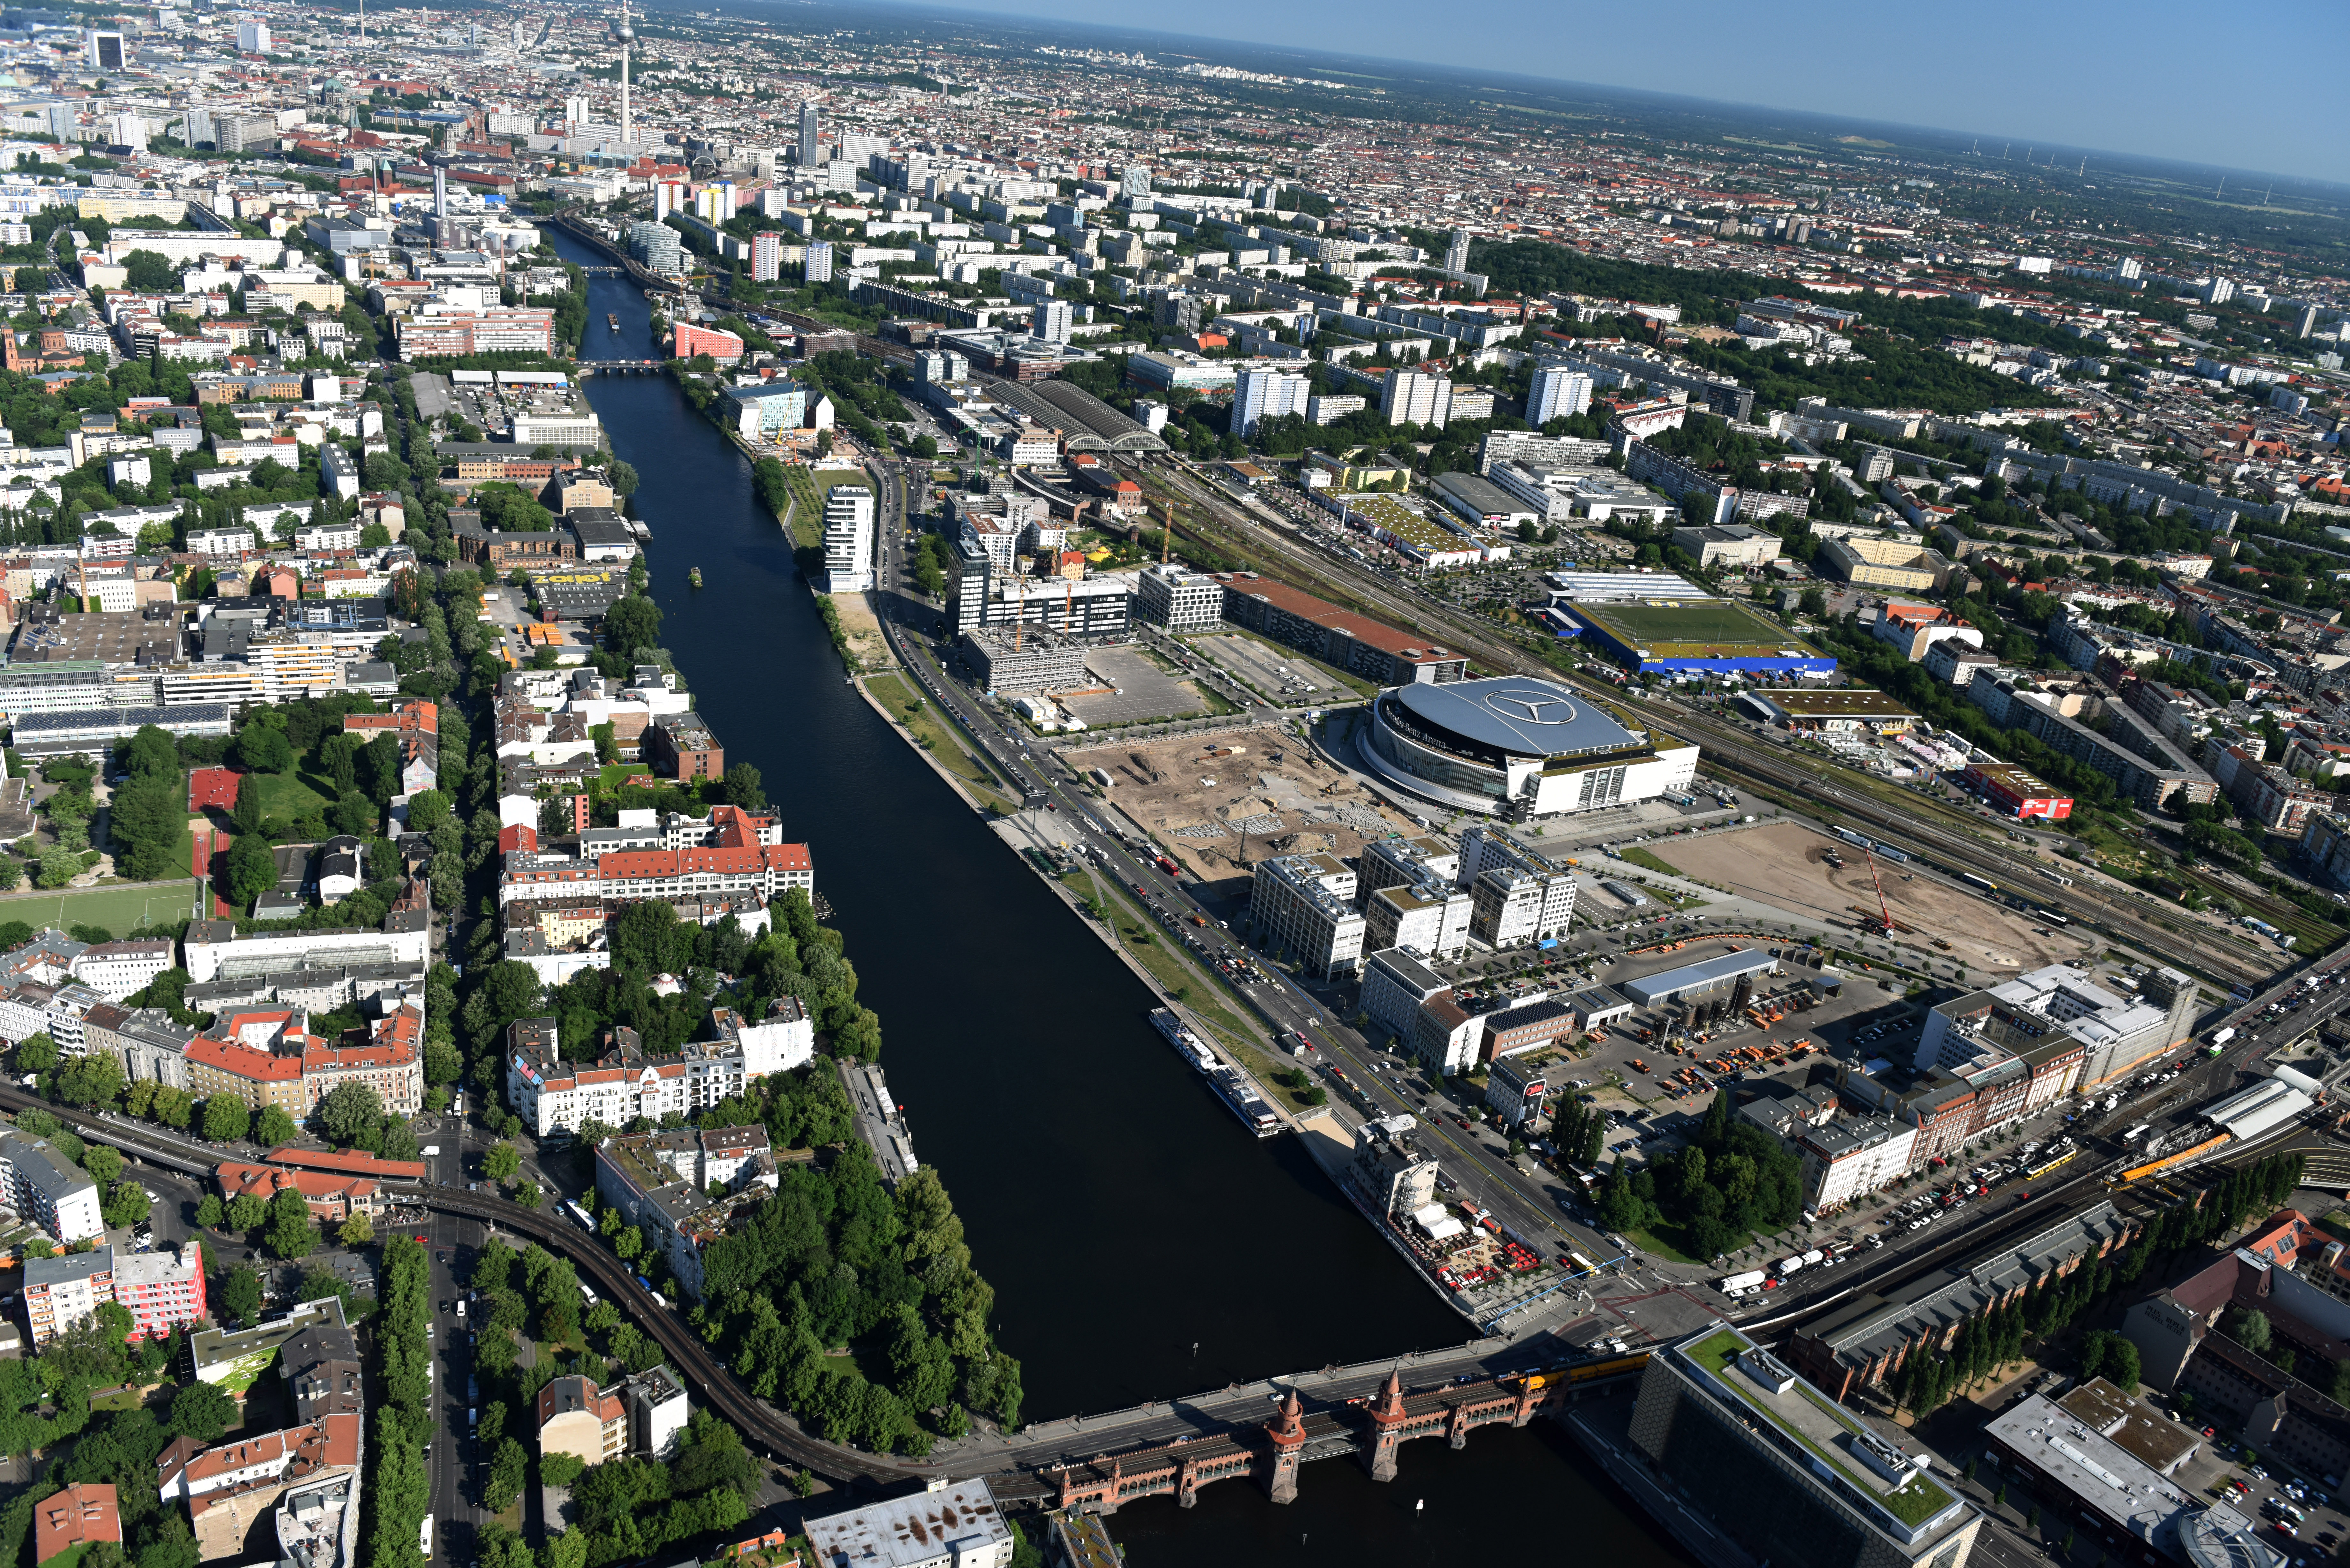 "BERLIN 06.06.2016 Mercedes-Benz-Arena am Ufer des Flusses Spree im Ortsteil Friedrichshain in Berlin. Die frühere o2 World Berlin und heutige Mercedes-Benz-Arena liegt im  Anschutz Areal, einem Büro- und Geschäftsgebiet am Spreeufer. // Mercedes-Benz-Arena on the Spree riverbank in the Friedrichshain part of Berlin. The former O2 World - now Mercedes-Benz-Arena - is located in the ""Anschutz Areal"", a business and office space on the riverbank. www.mercedes-benz-arena-berlin.de Foto: Robert Grahn"